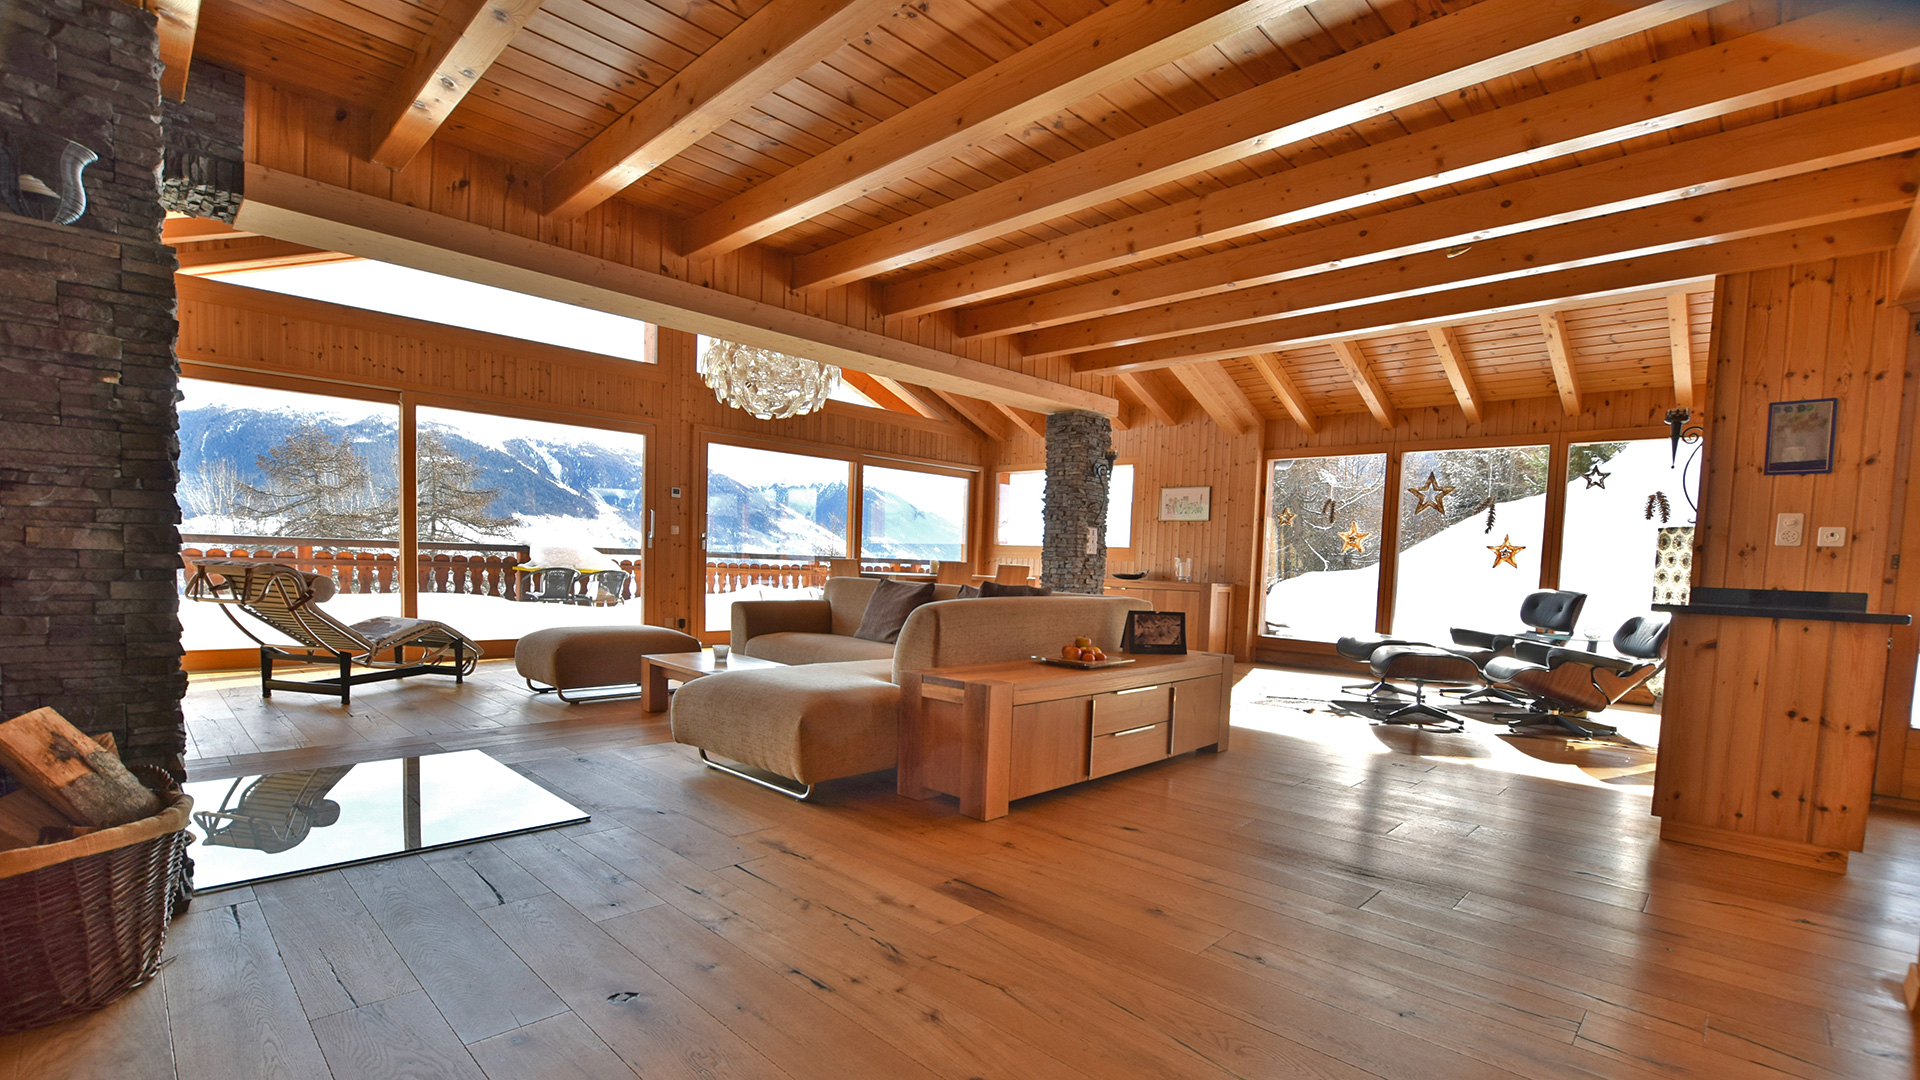 Chalet Lumineuse Chalet, Switzerland